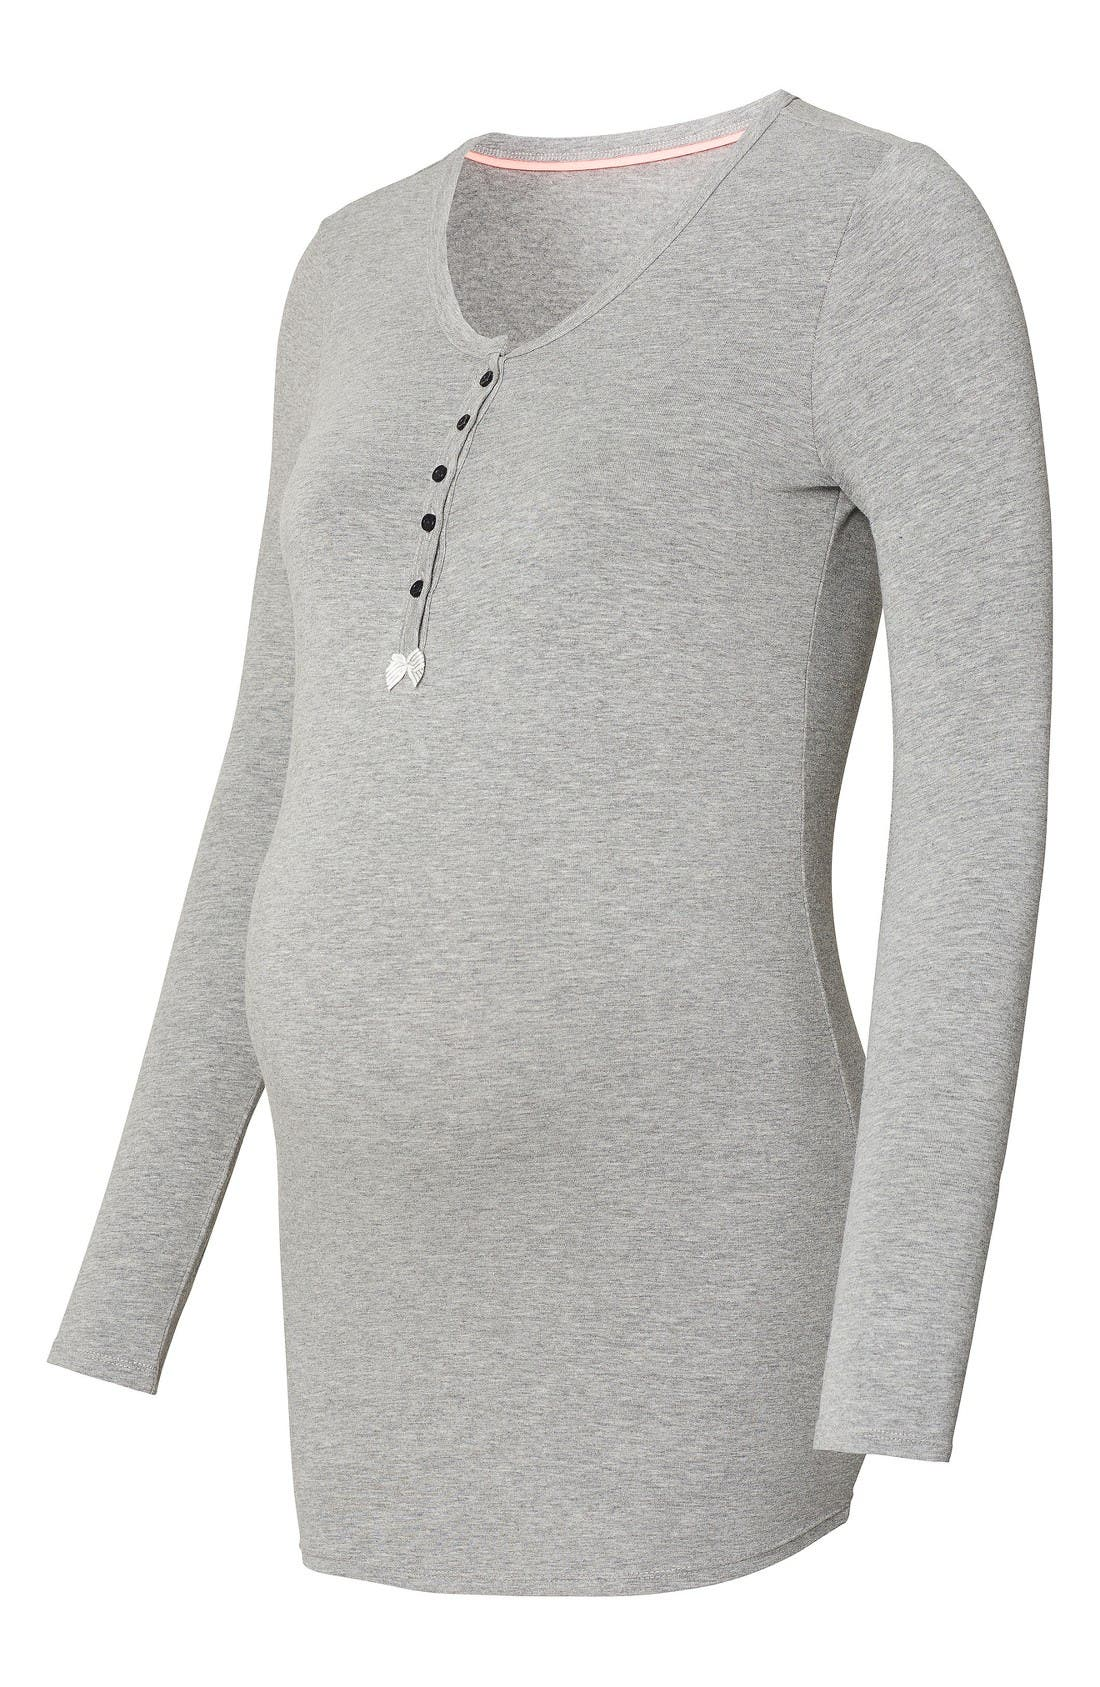 Alternate Image 4  - Noppies Feline Henley Maternity/Nursing Tee